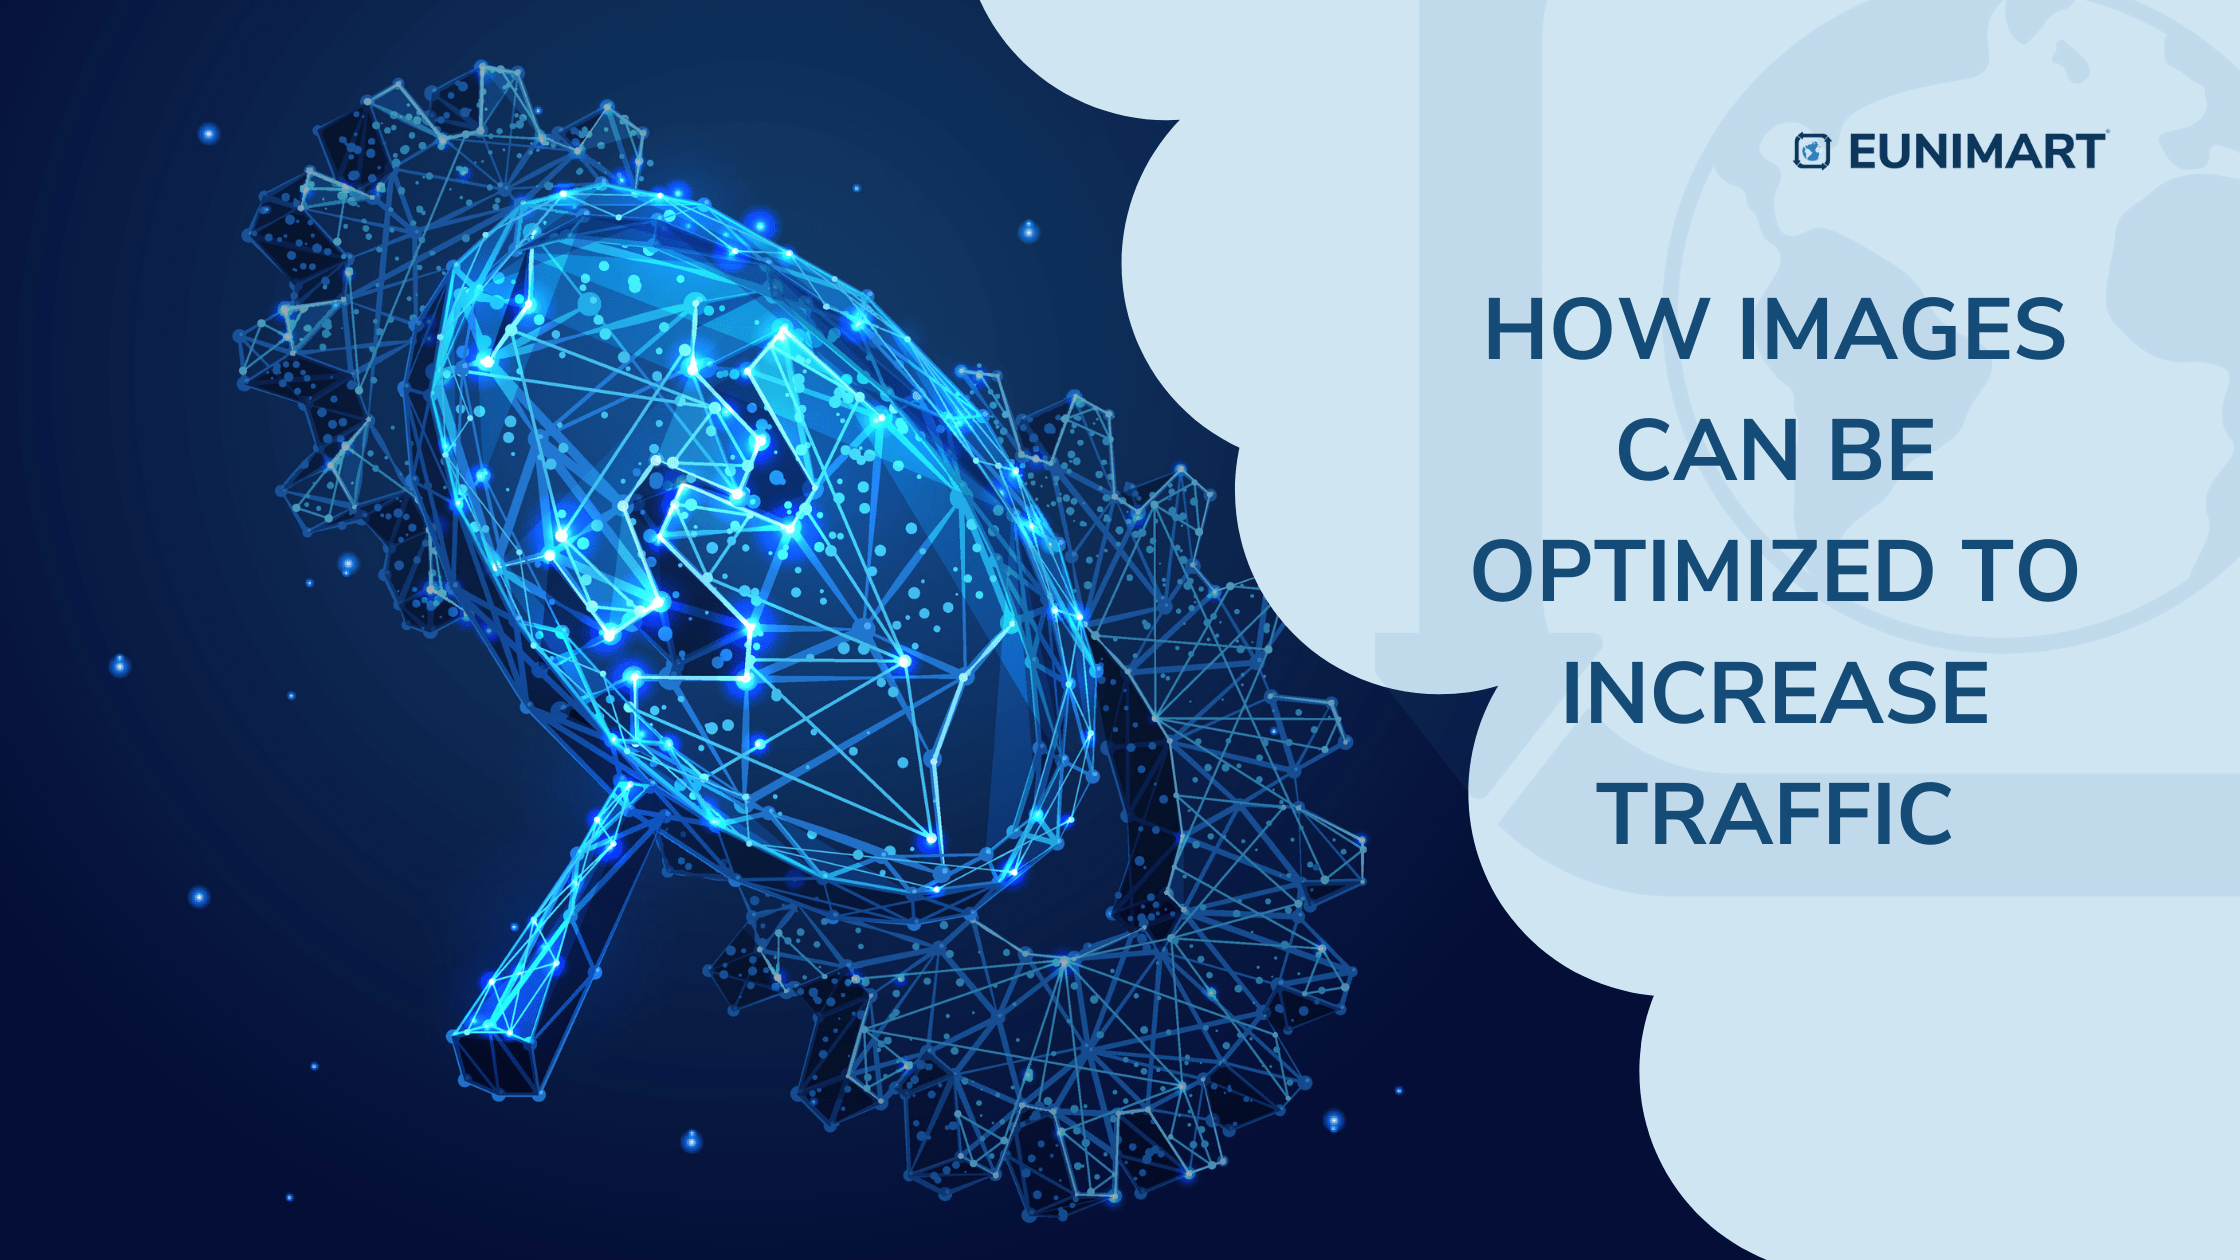 How Images can be optimized to increase traffic